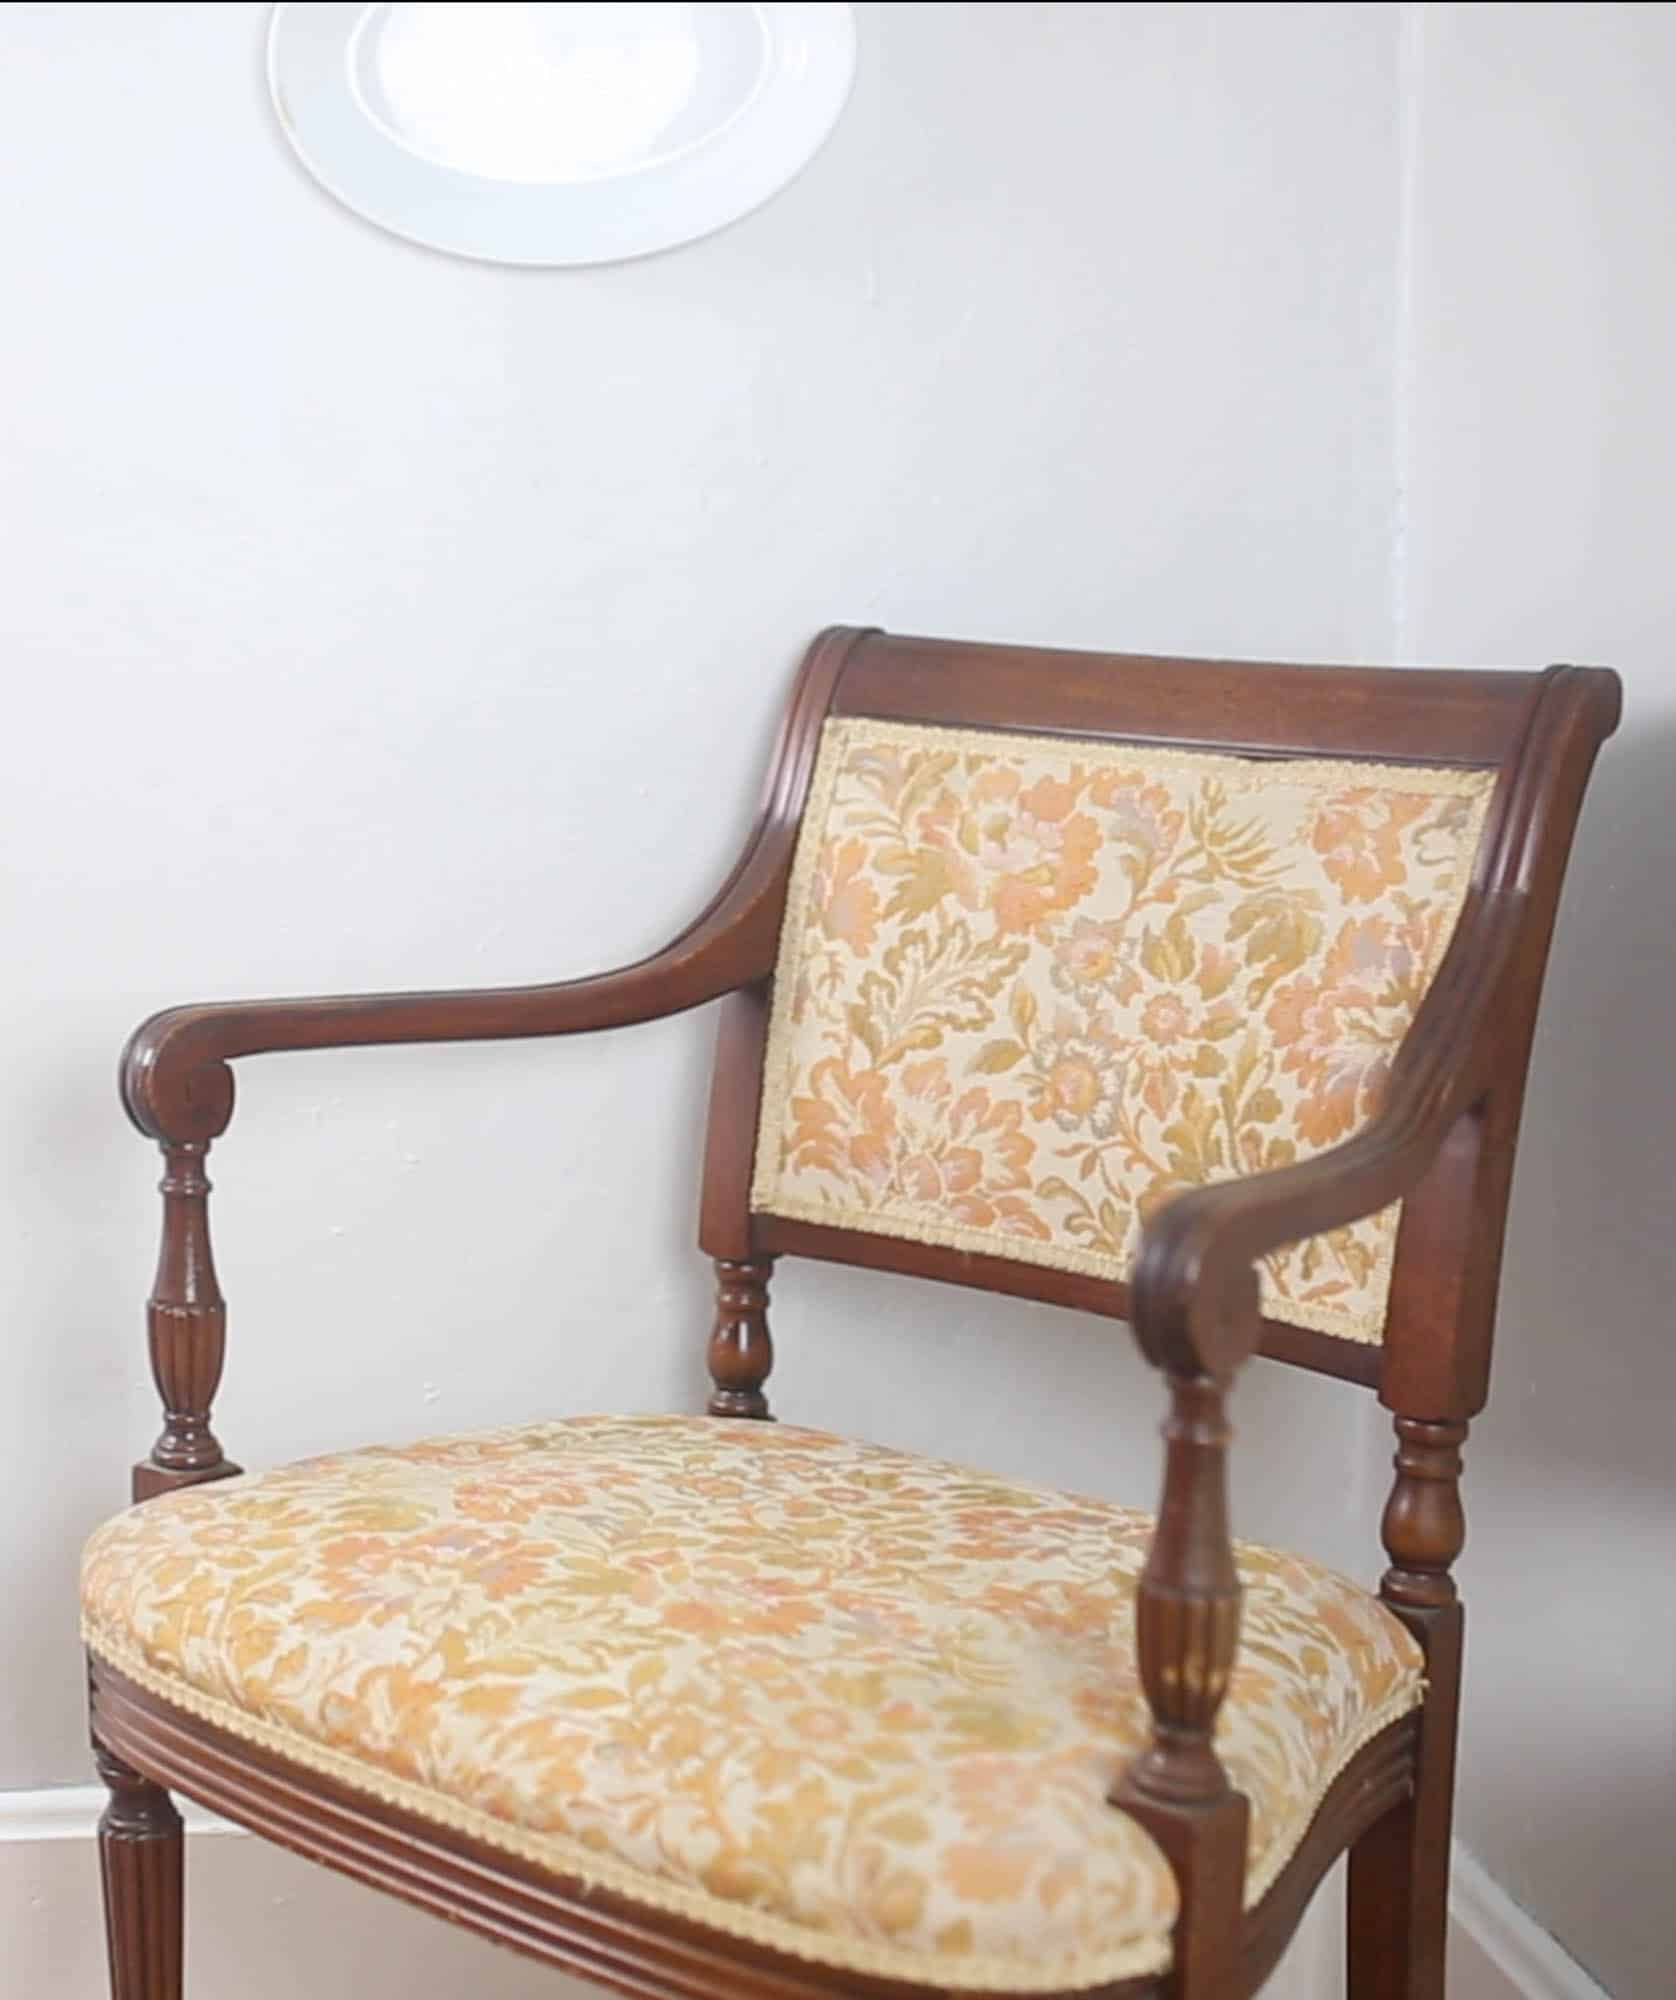 Learn How To Reupholster A Chair With This Video Tutorial. Only A Staple  Gun And Hot Glue Is Required.